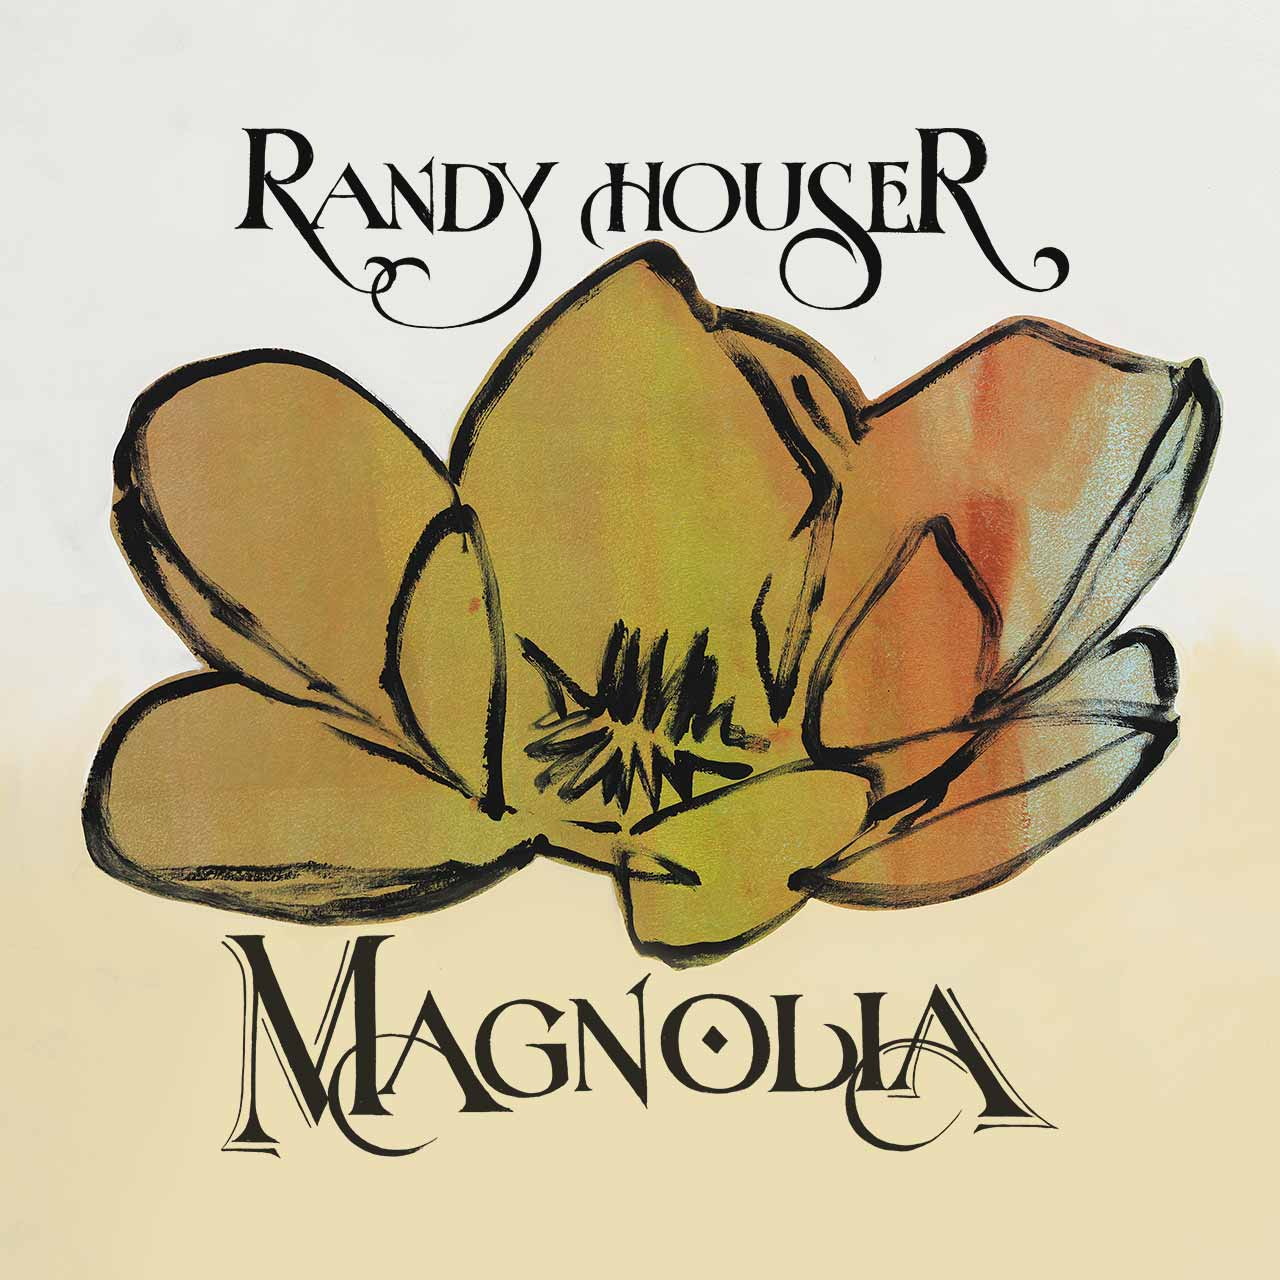 RANDY'S NEW ALBUM, MAGNOLIA, OUT NOVEMBER 2 AND NOW AVAILABLE FOR PRE-ORDER